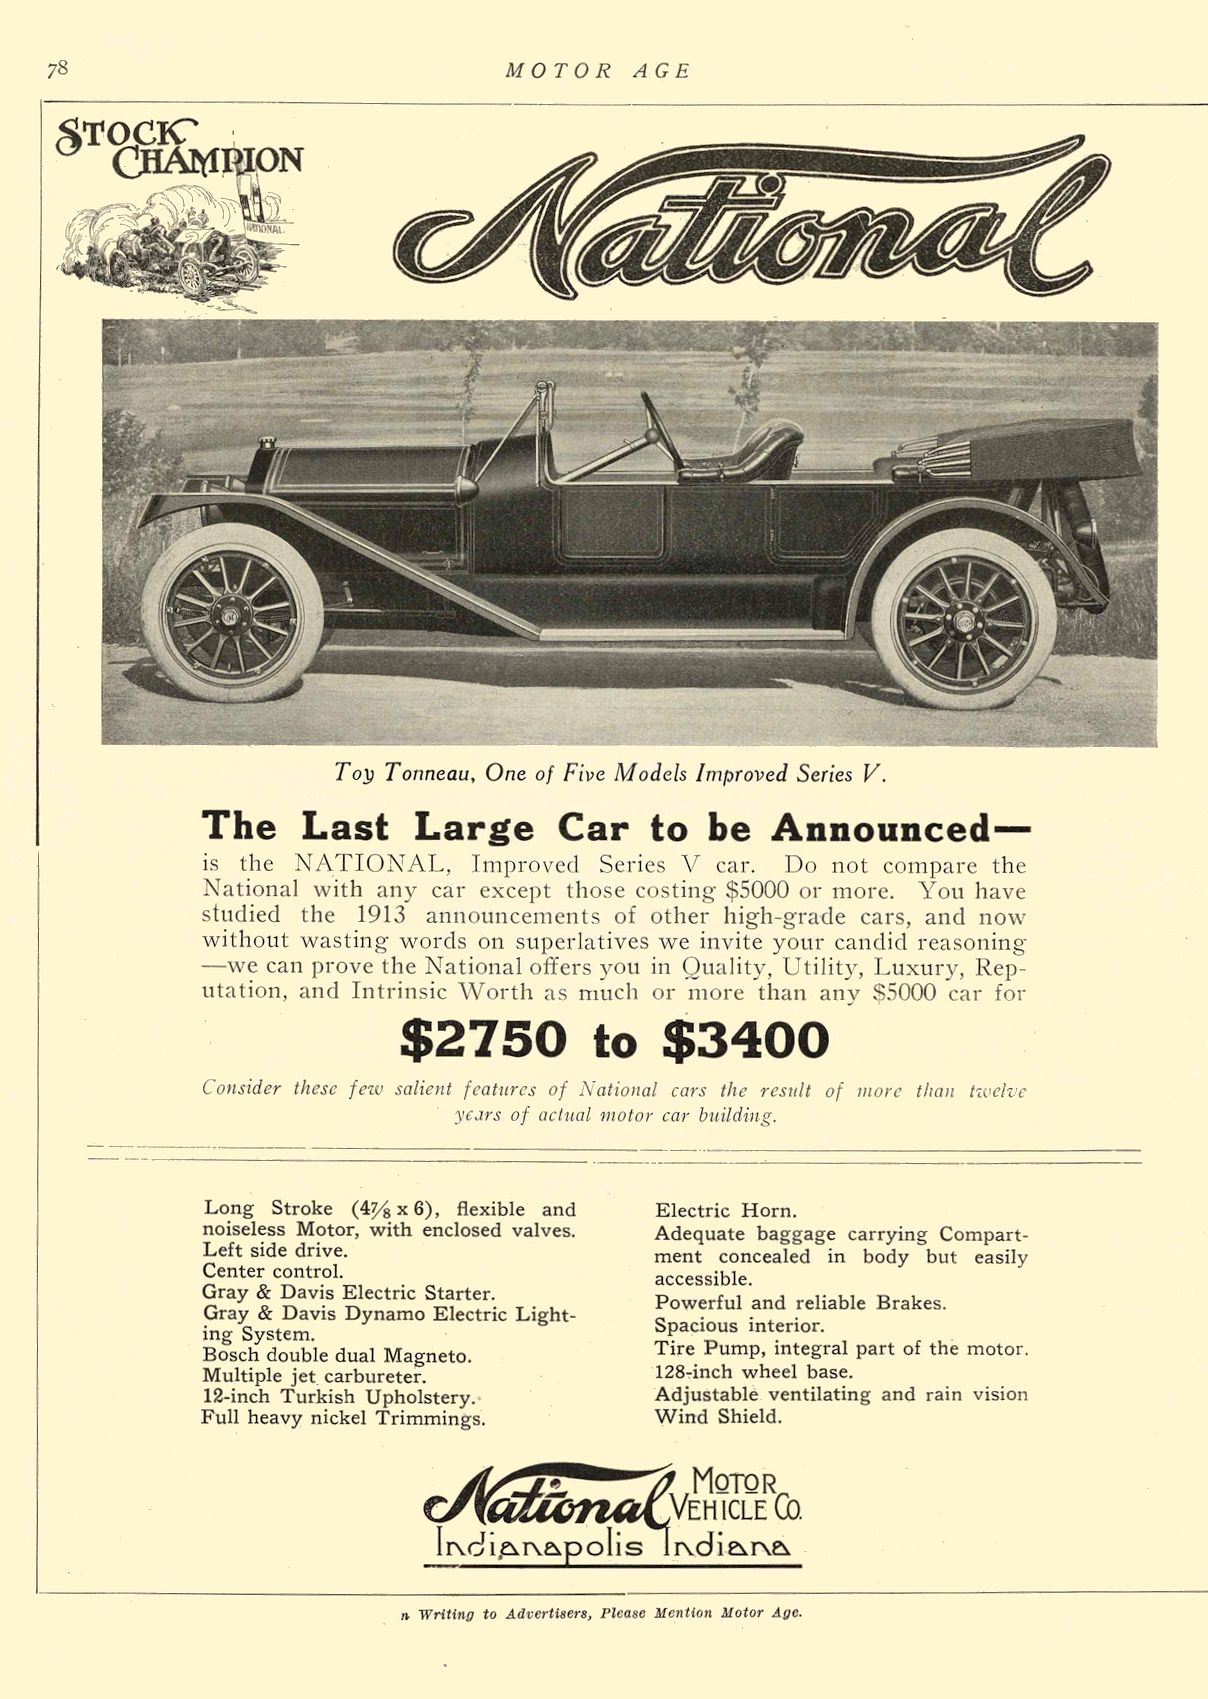 1912 12 ca. 1913 NATIONAL The Last Large Car to be Announced– National MOTOR VEHICLE CO. Indianapolis, IND MOTOR AGE ca. December 1912 8.5″x12″ page 78